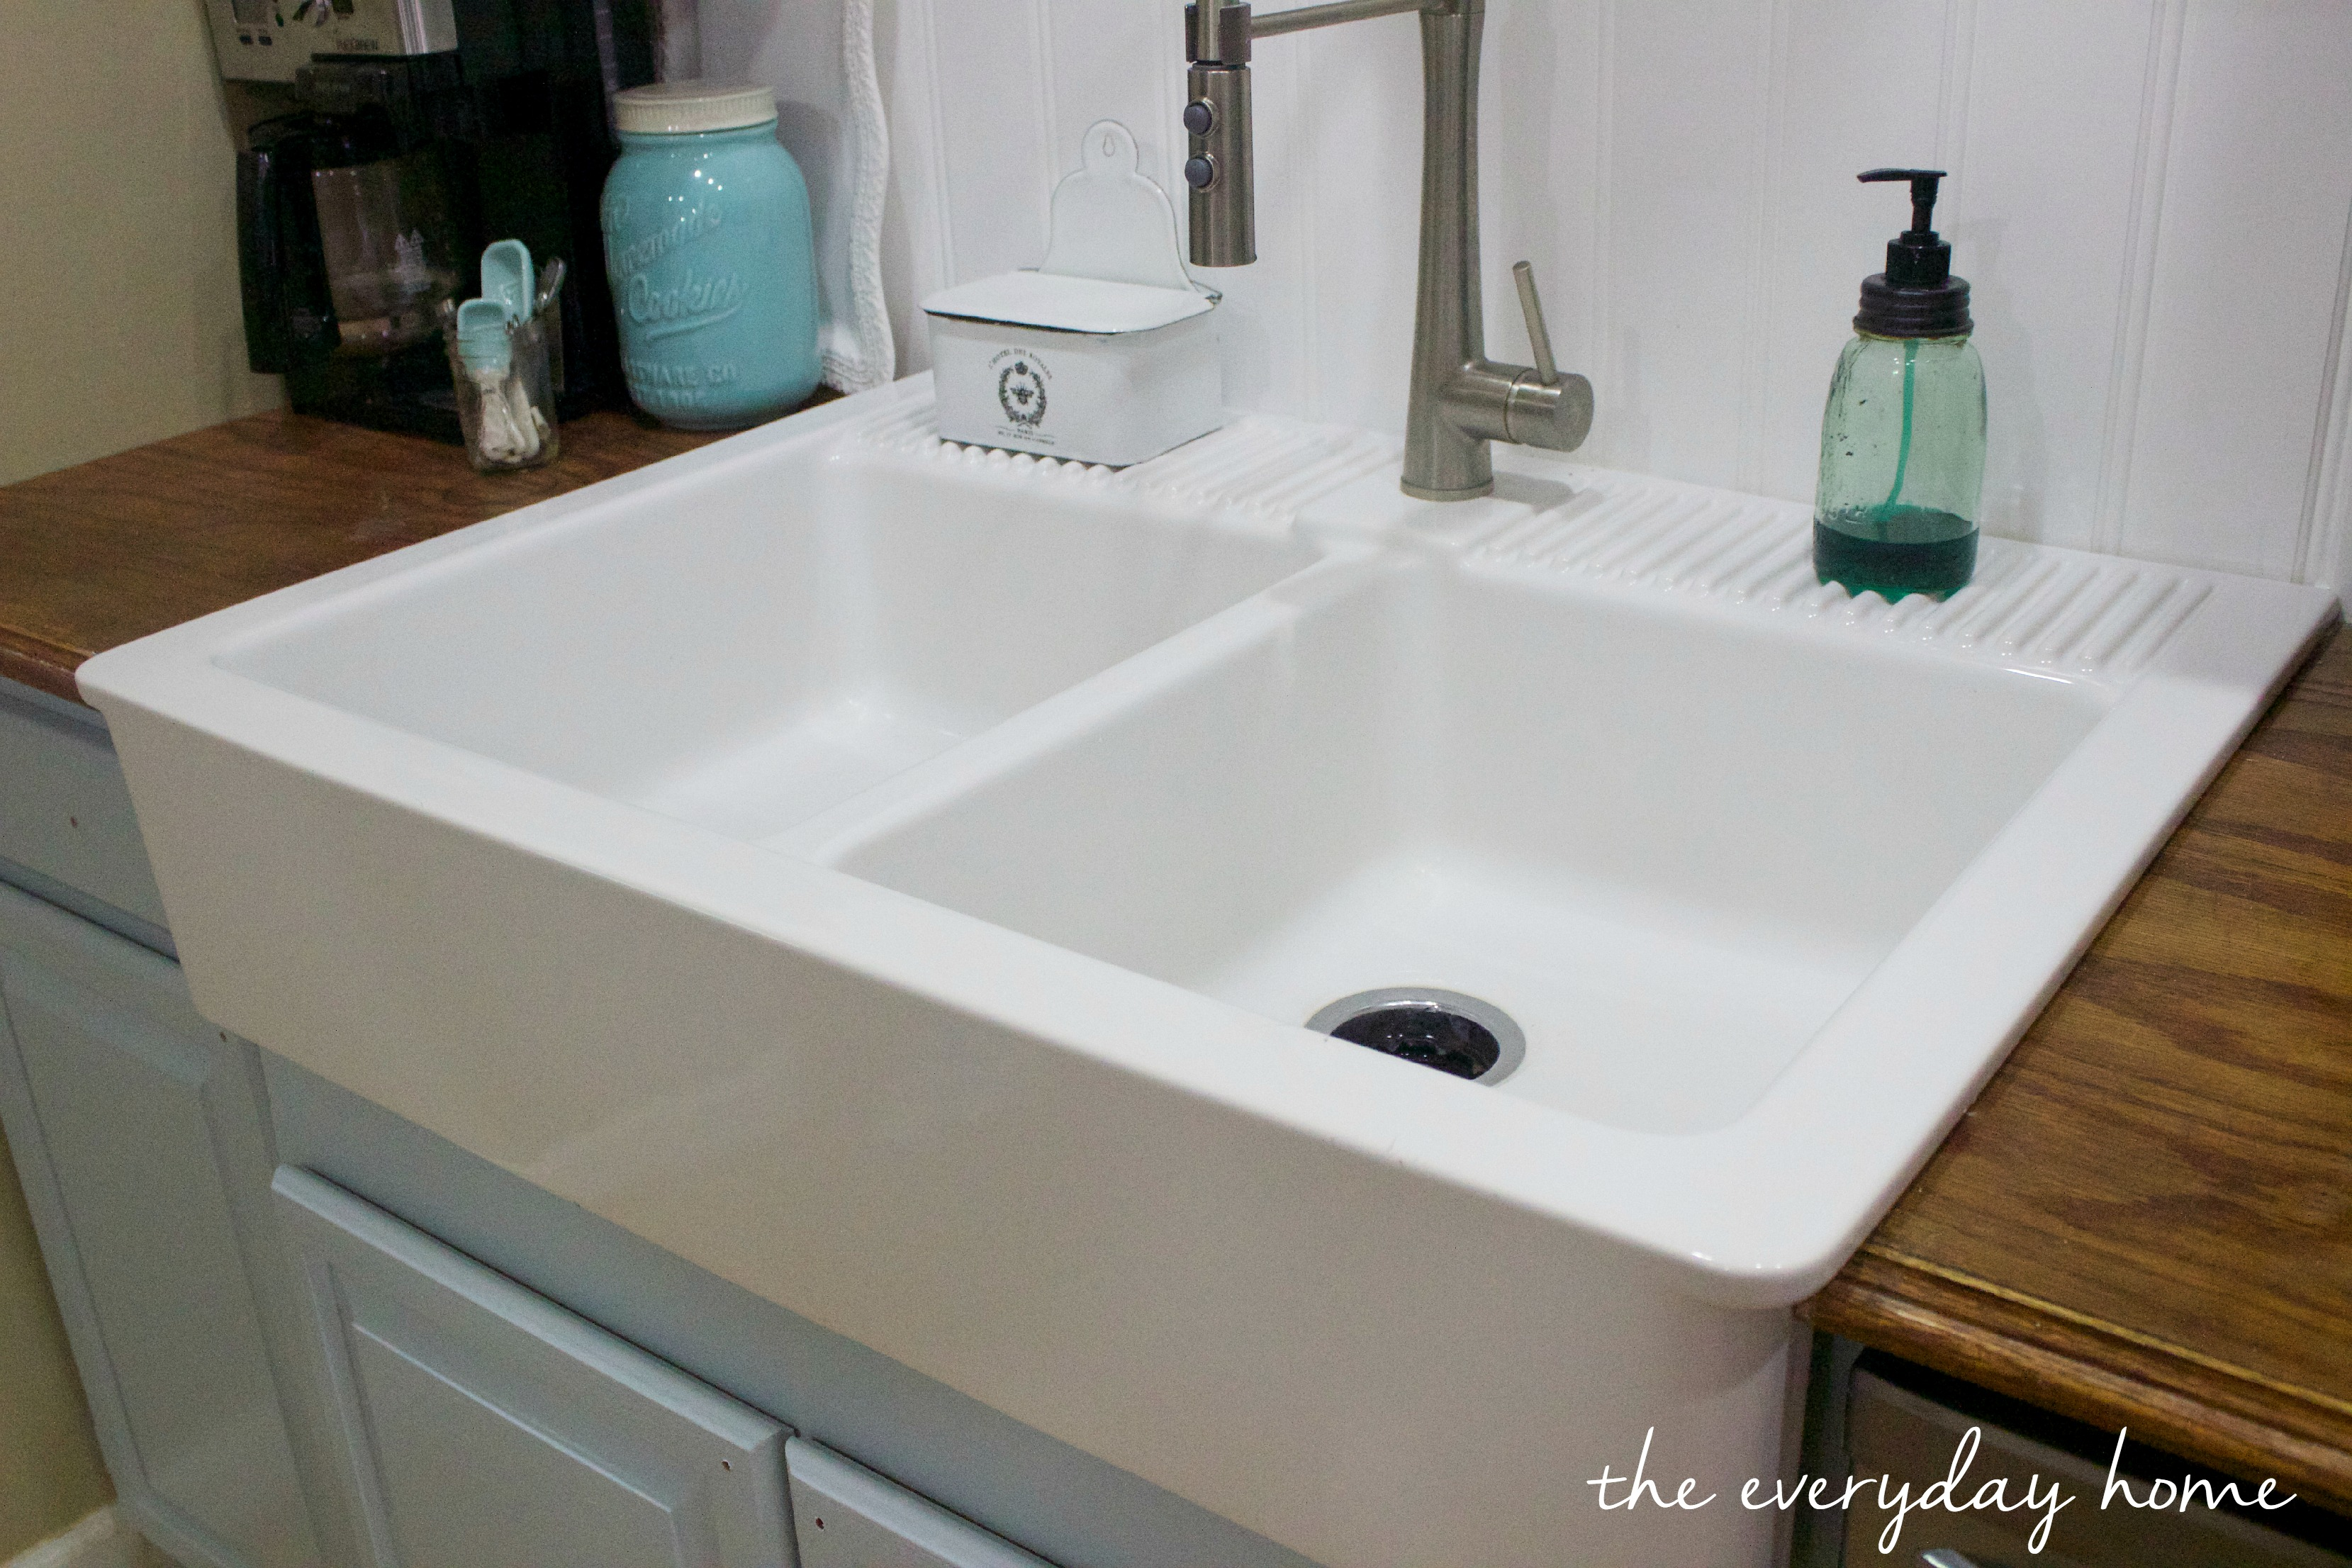 Interior Ikea Apron Front Sink ikea farmhouse sink the everyday home www evevrydayhomeblog com